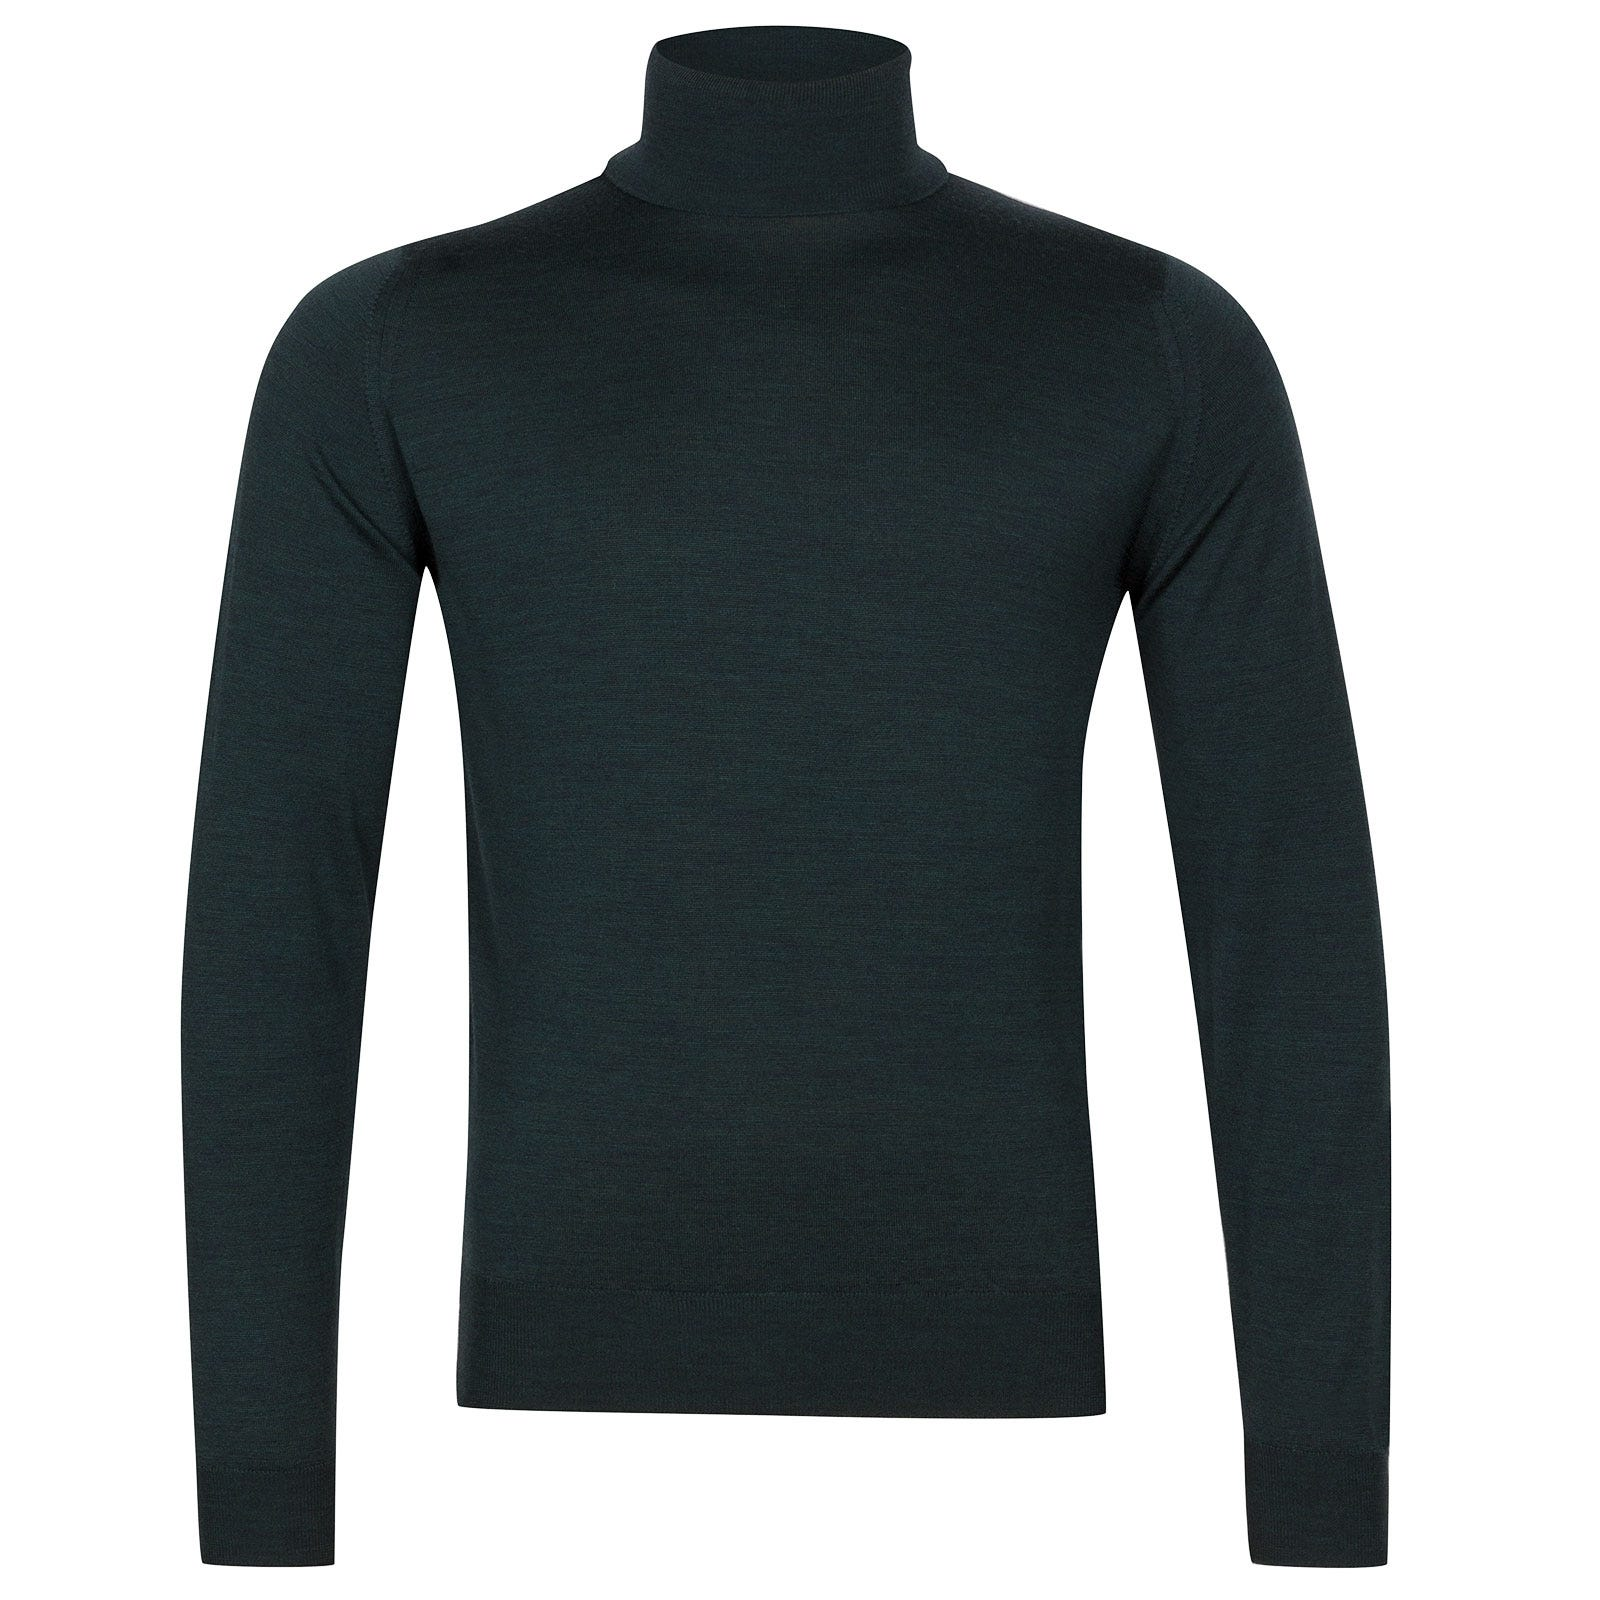 John Smedley Orta Merino Wool Pullover in Racing Green-L